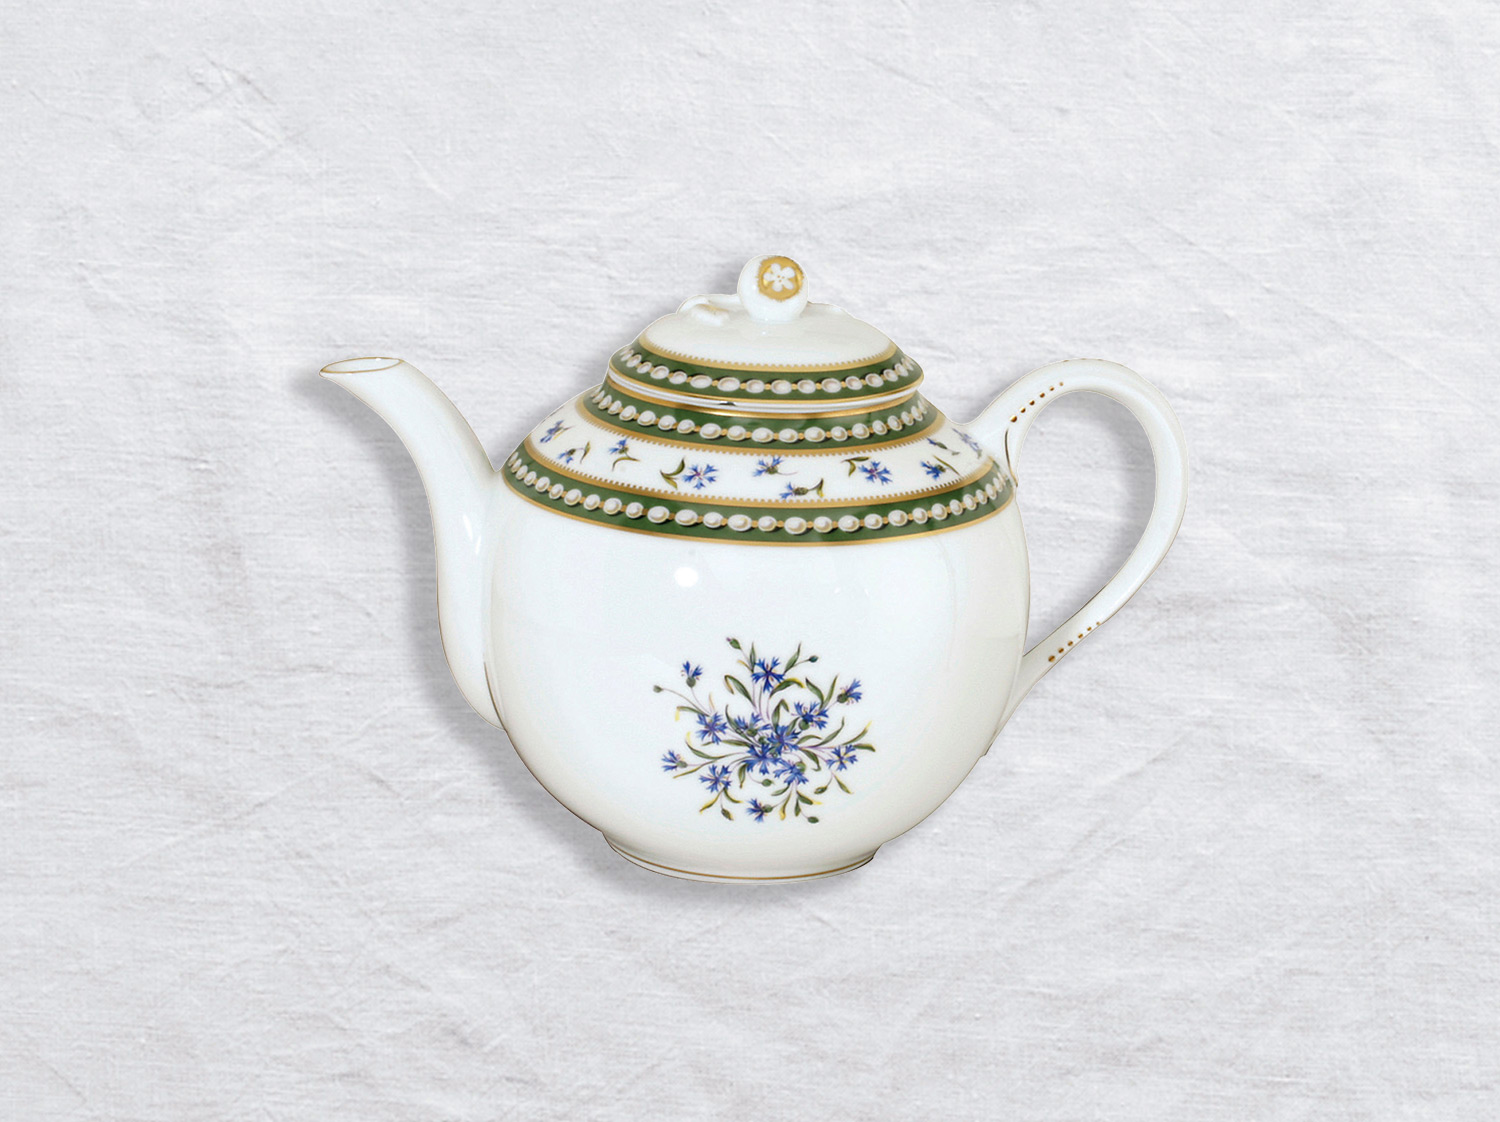 Verseuse basse 12 tasses 1,1 L en porcelaine de la collection Marie-antoinette Bernardaud